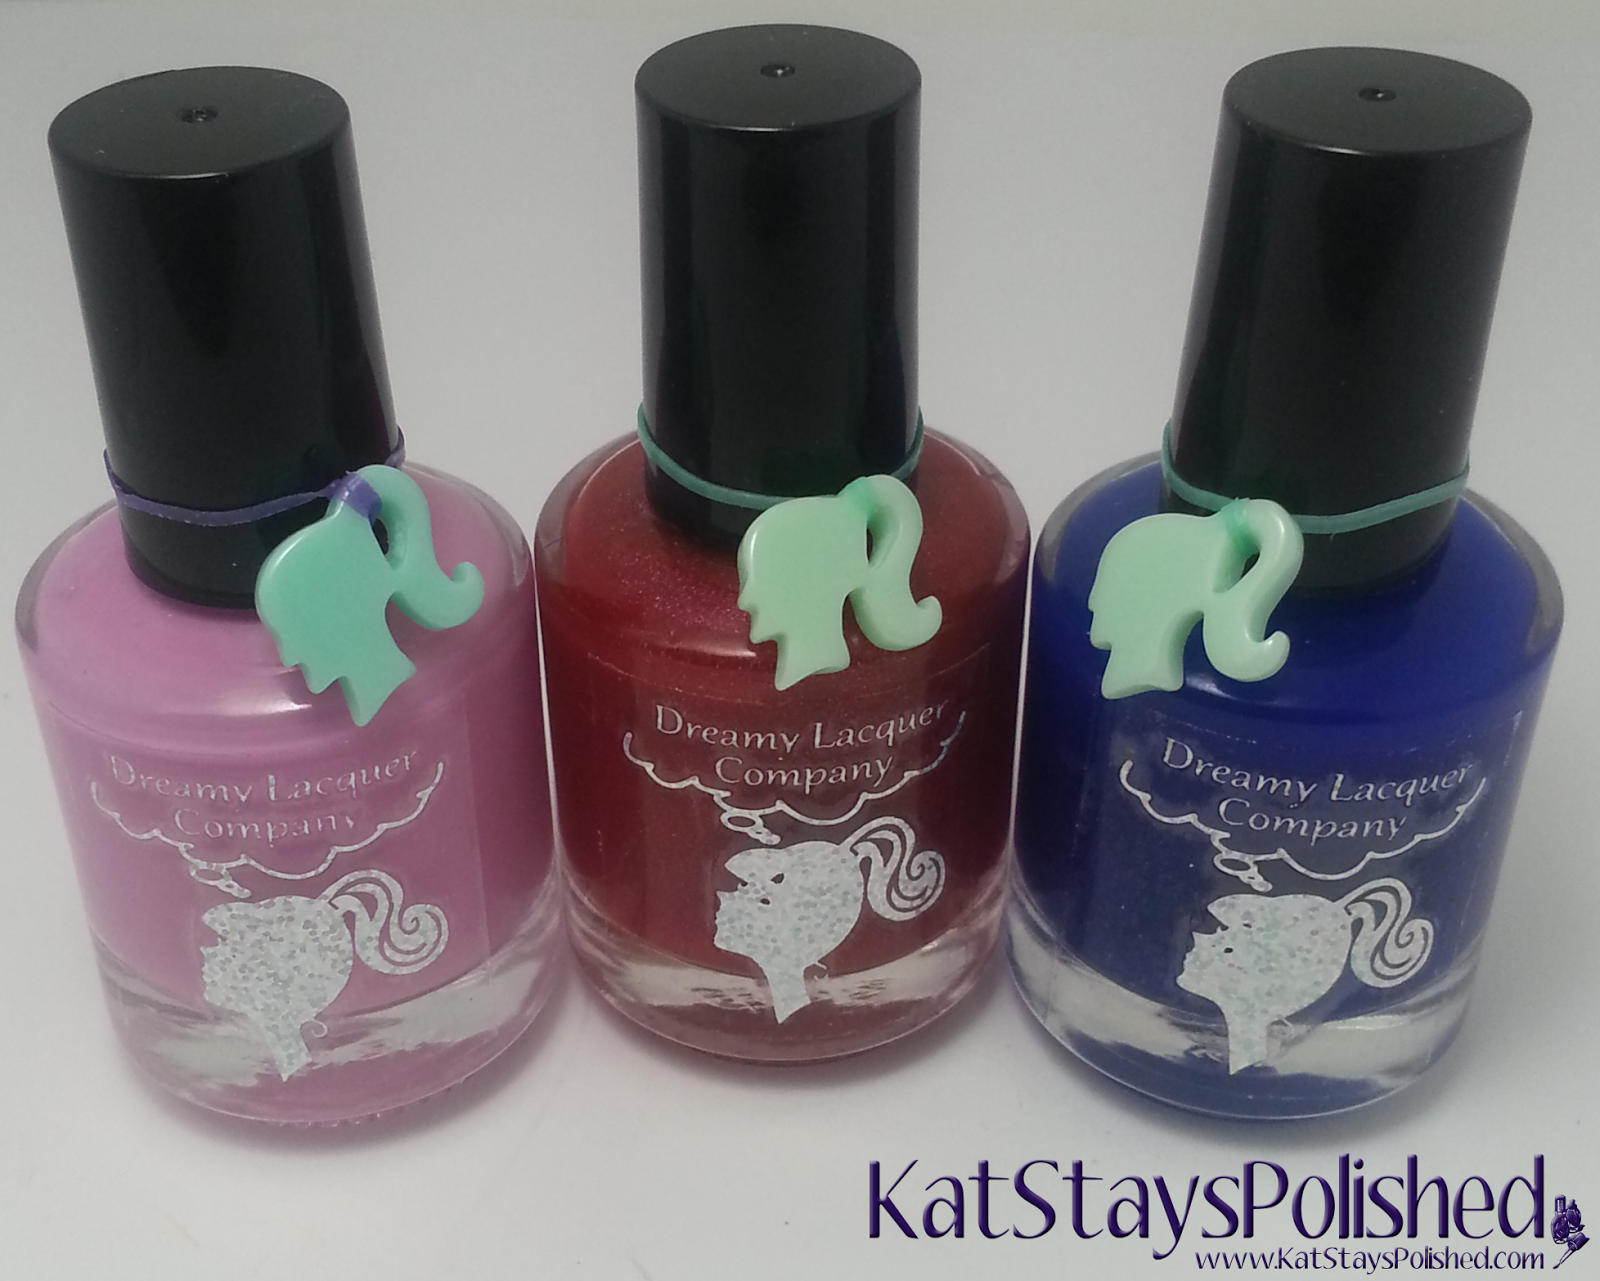 Dreamy Lacquer Company | Kat Stays Polished